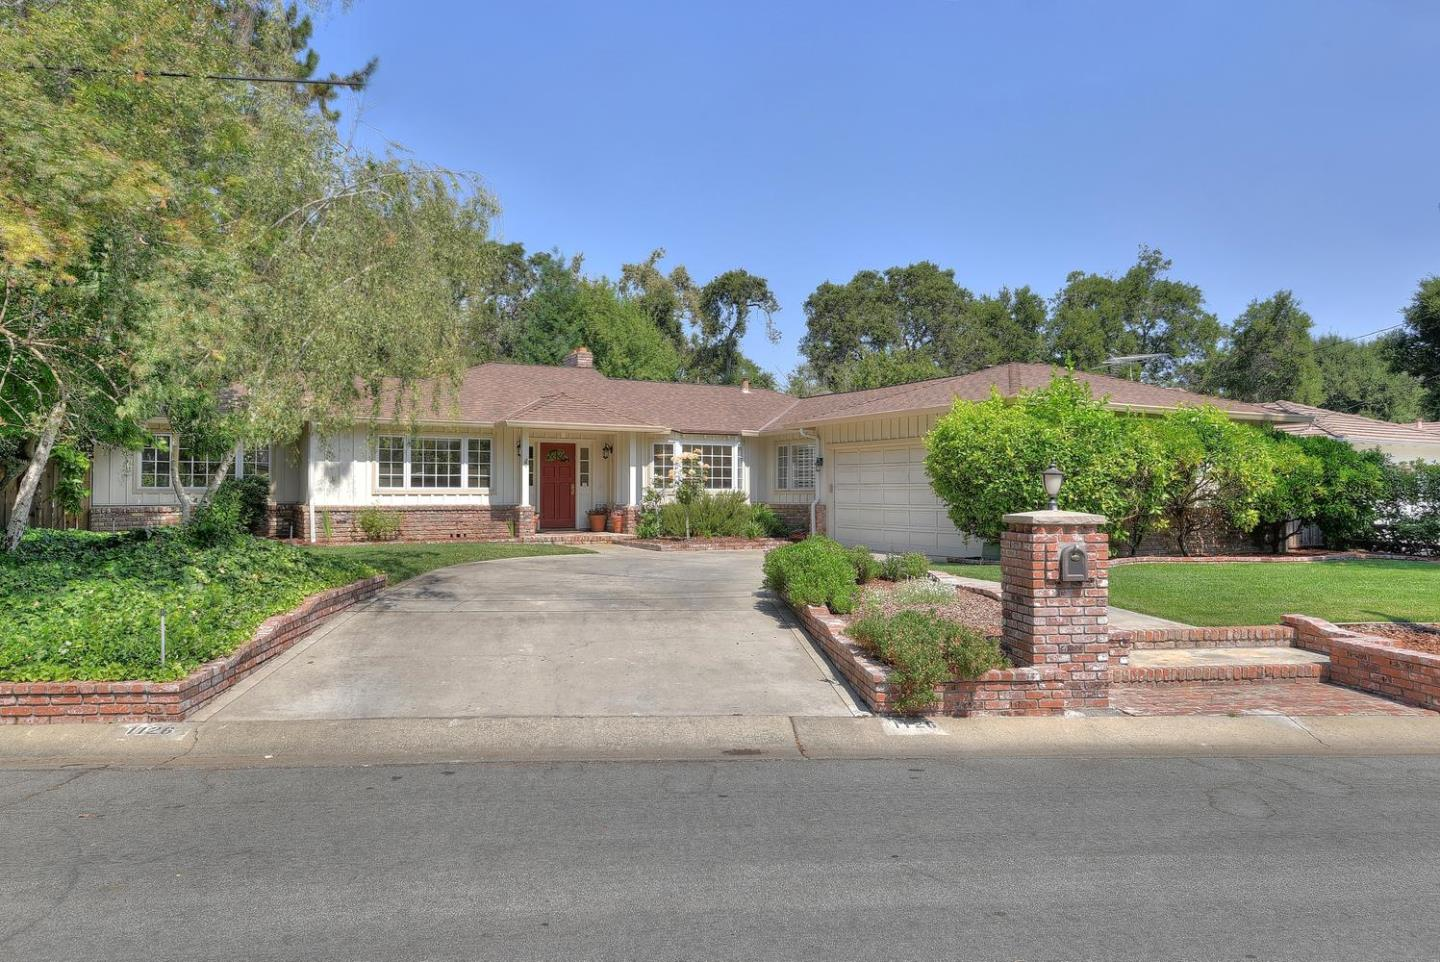 Single Family Home for Sale at 1126 Laureles Drive Los Altos, California 94022 United States